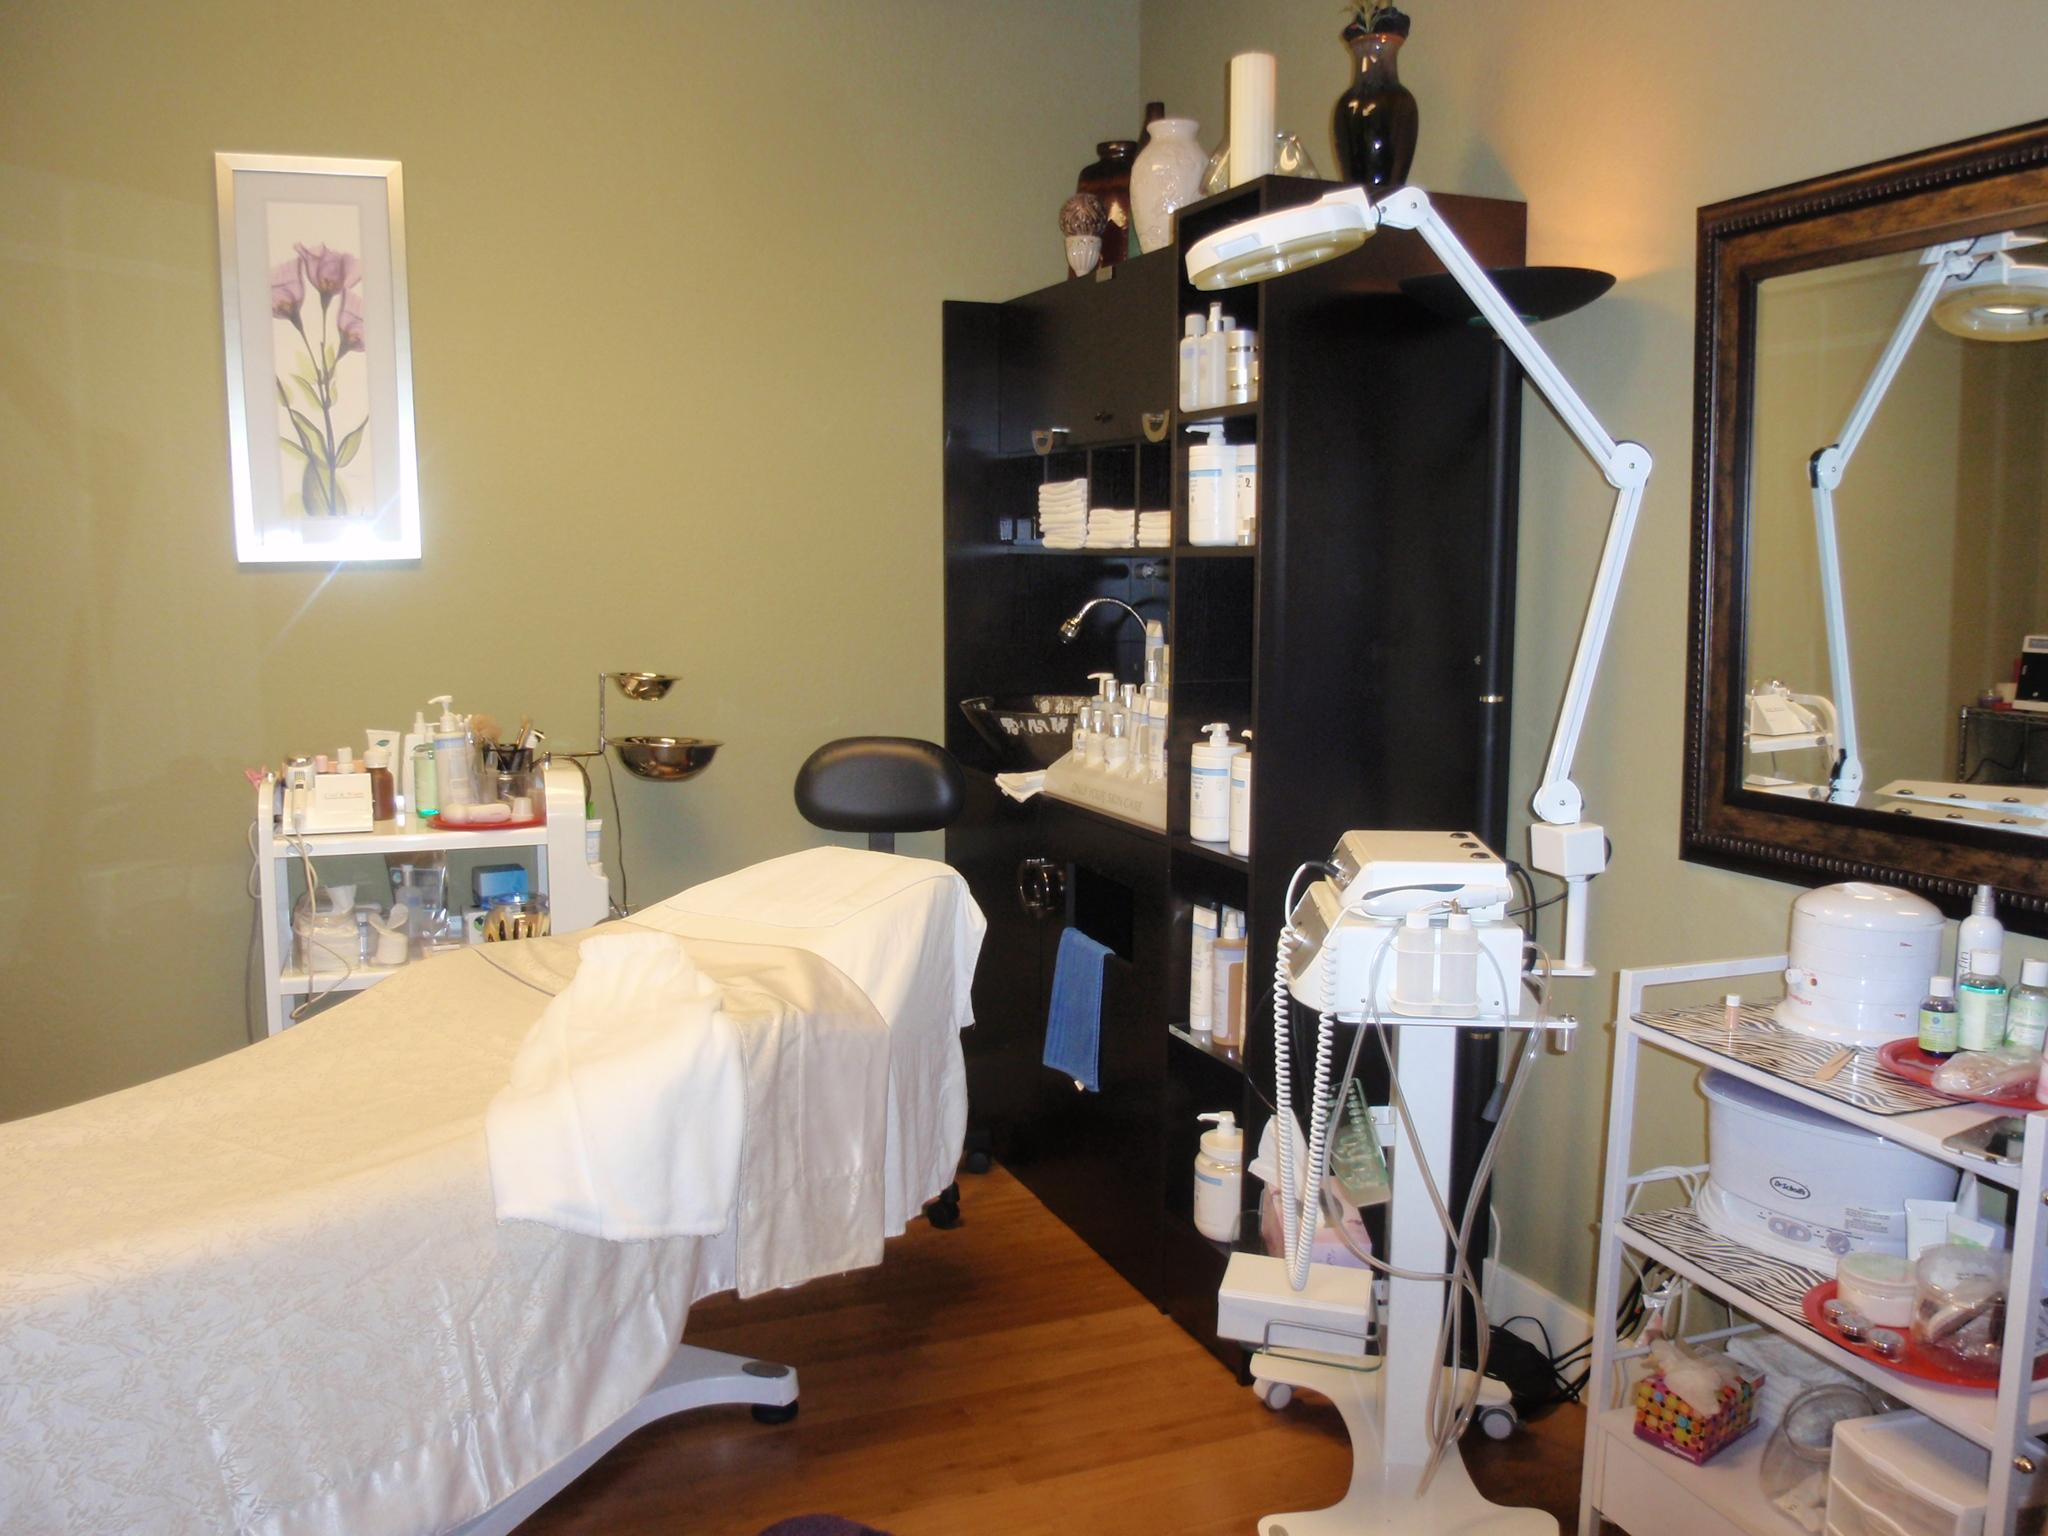 Pretty skin in bentonville medical arts in bentonville ar for Acropolis salon bentonville ar